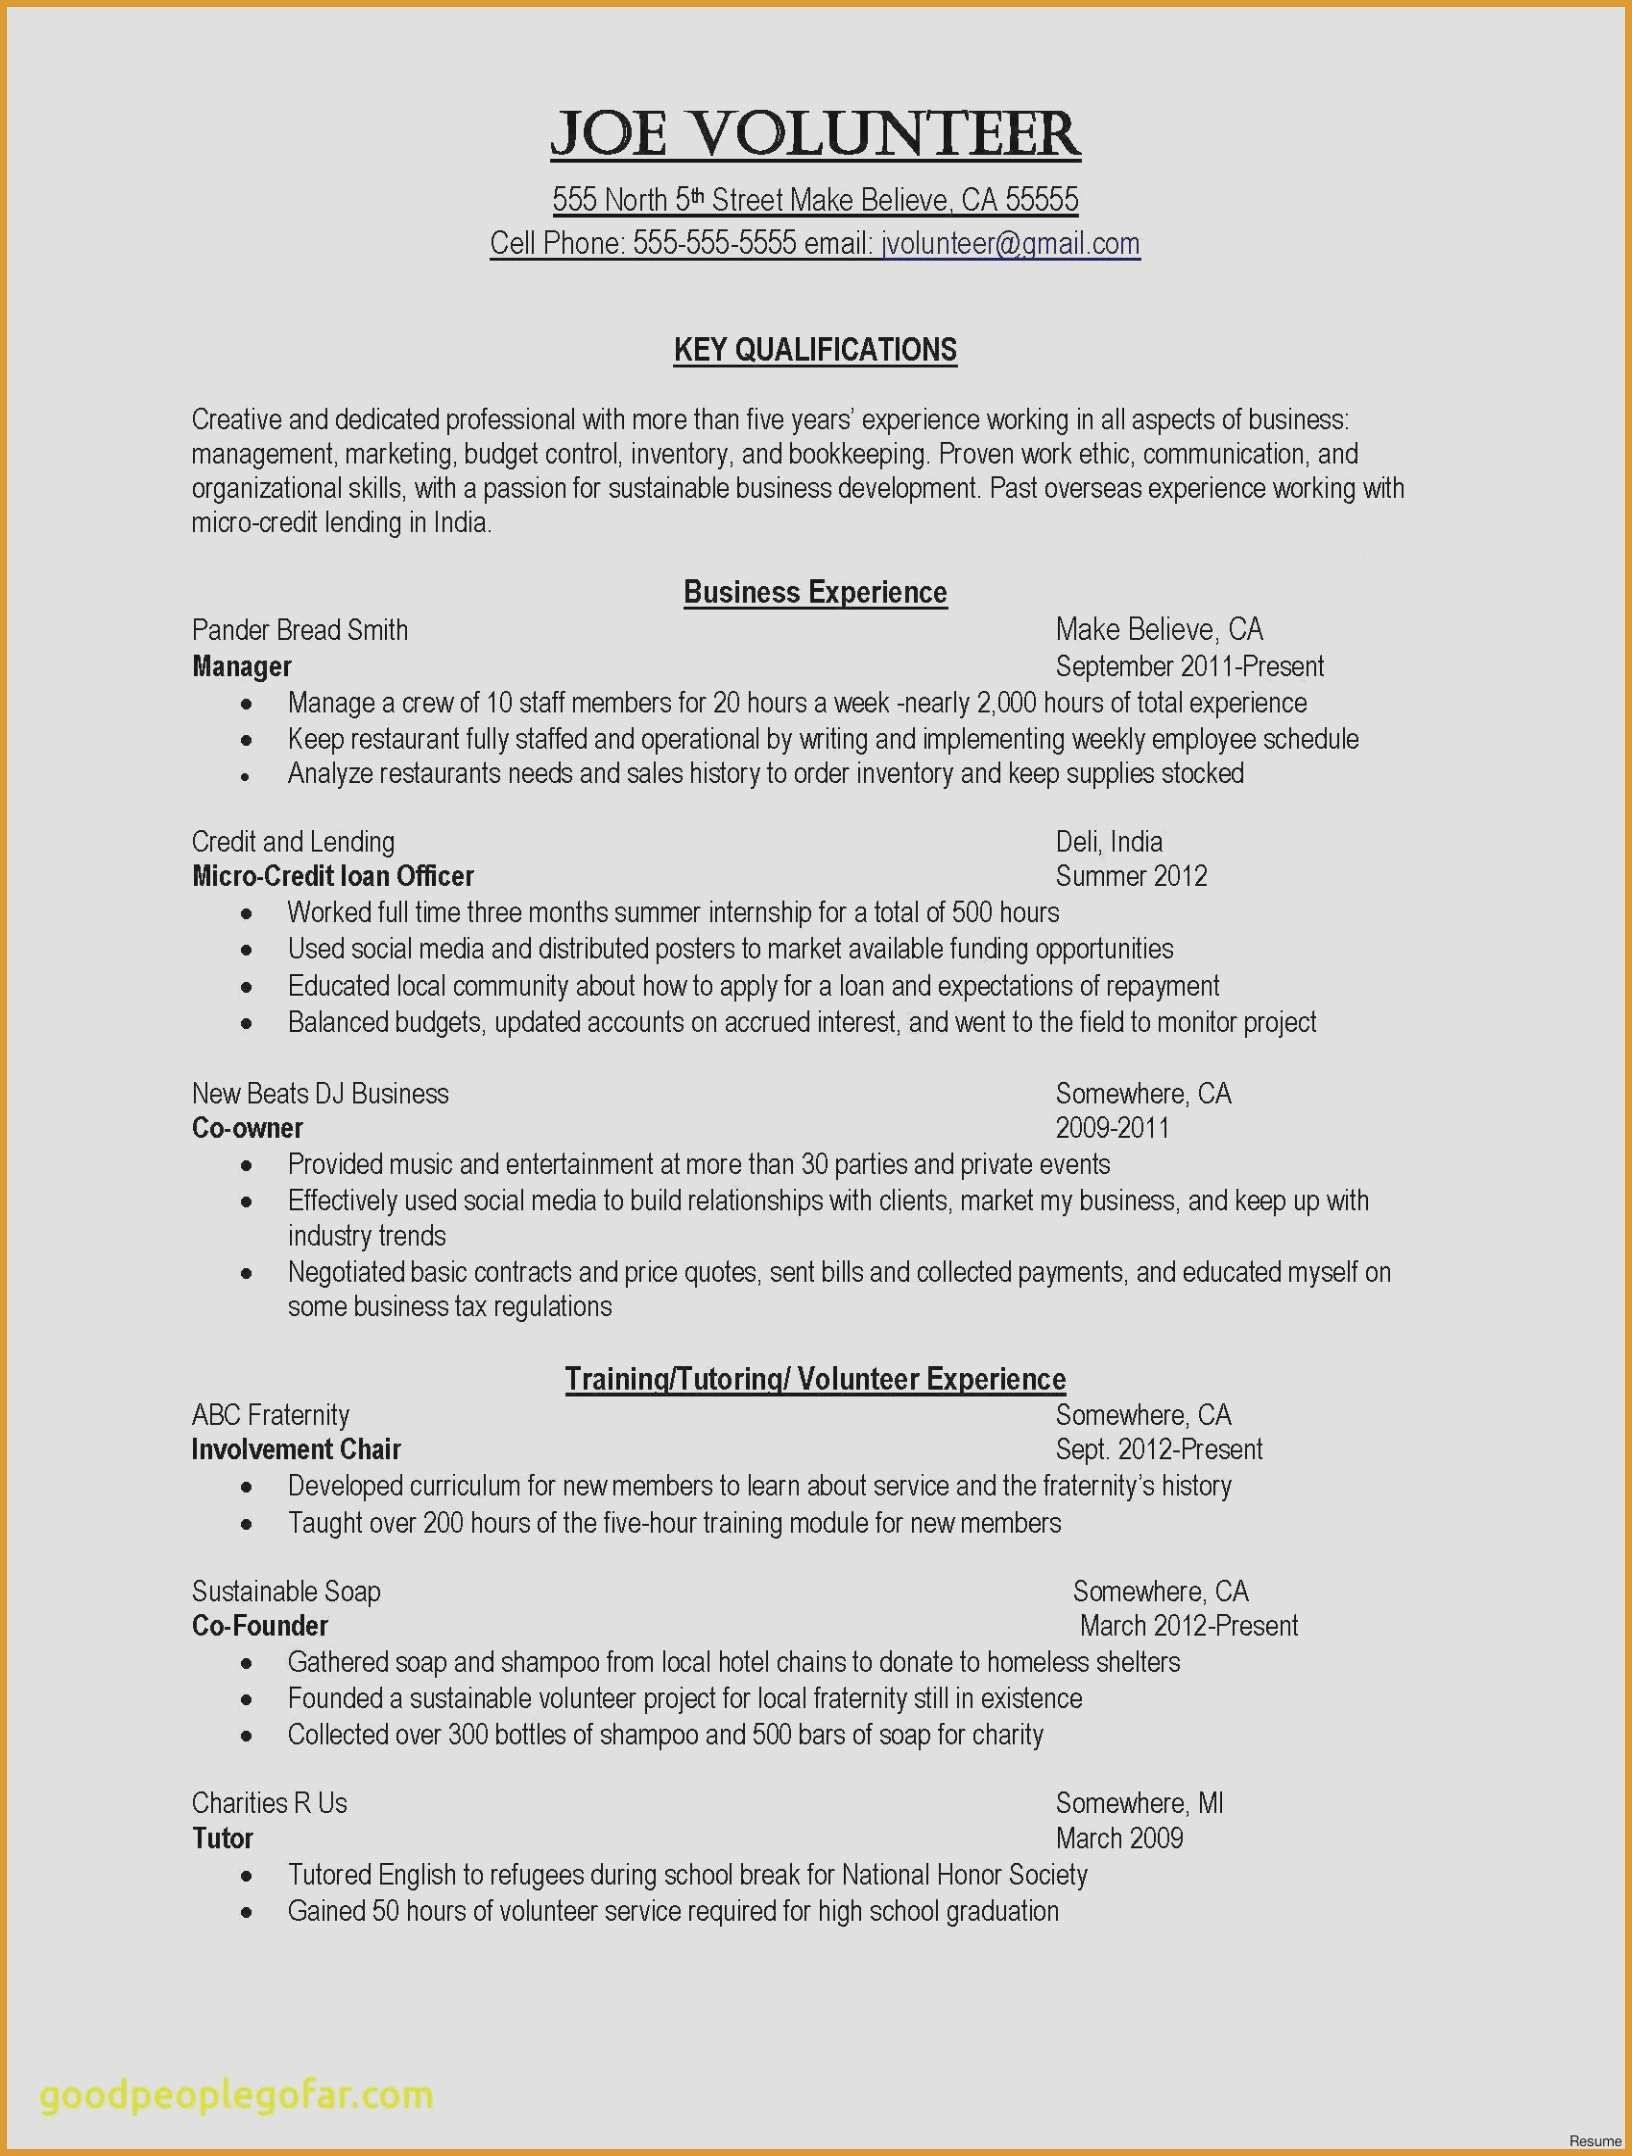 78 Elegant Collection Of Resume Examples For Creative Fields